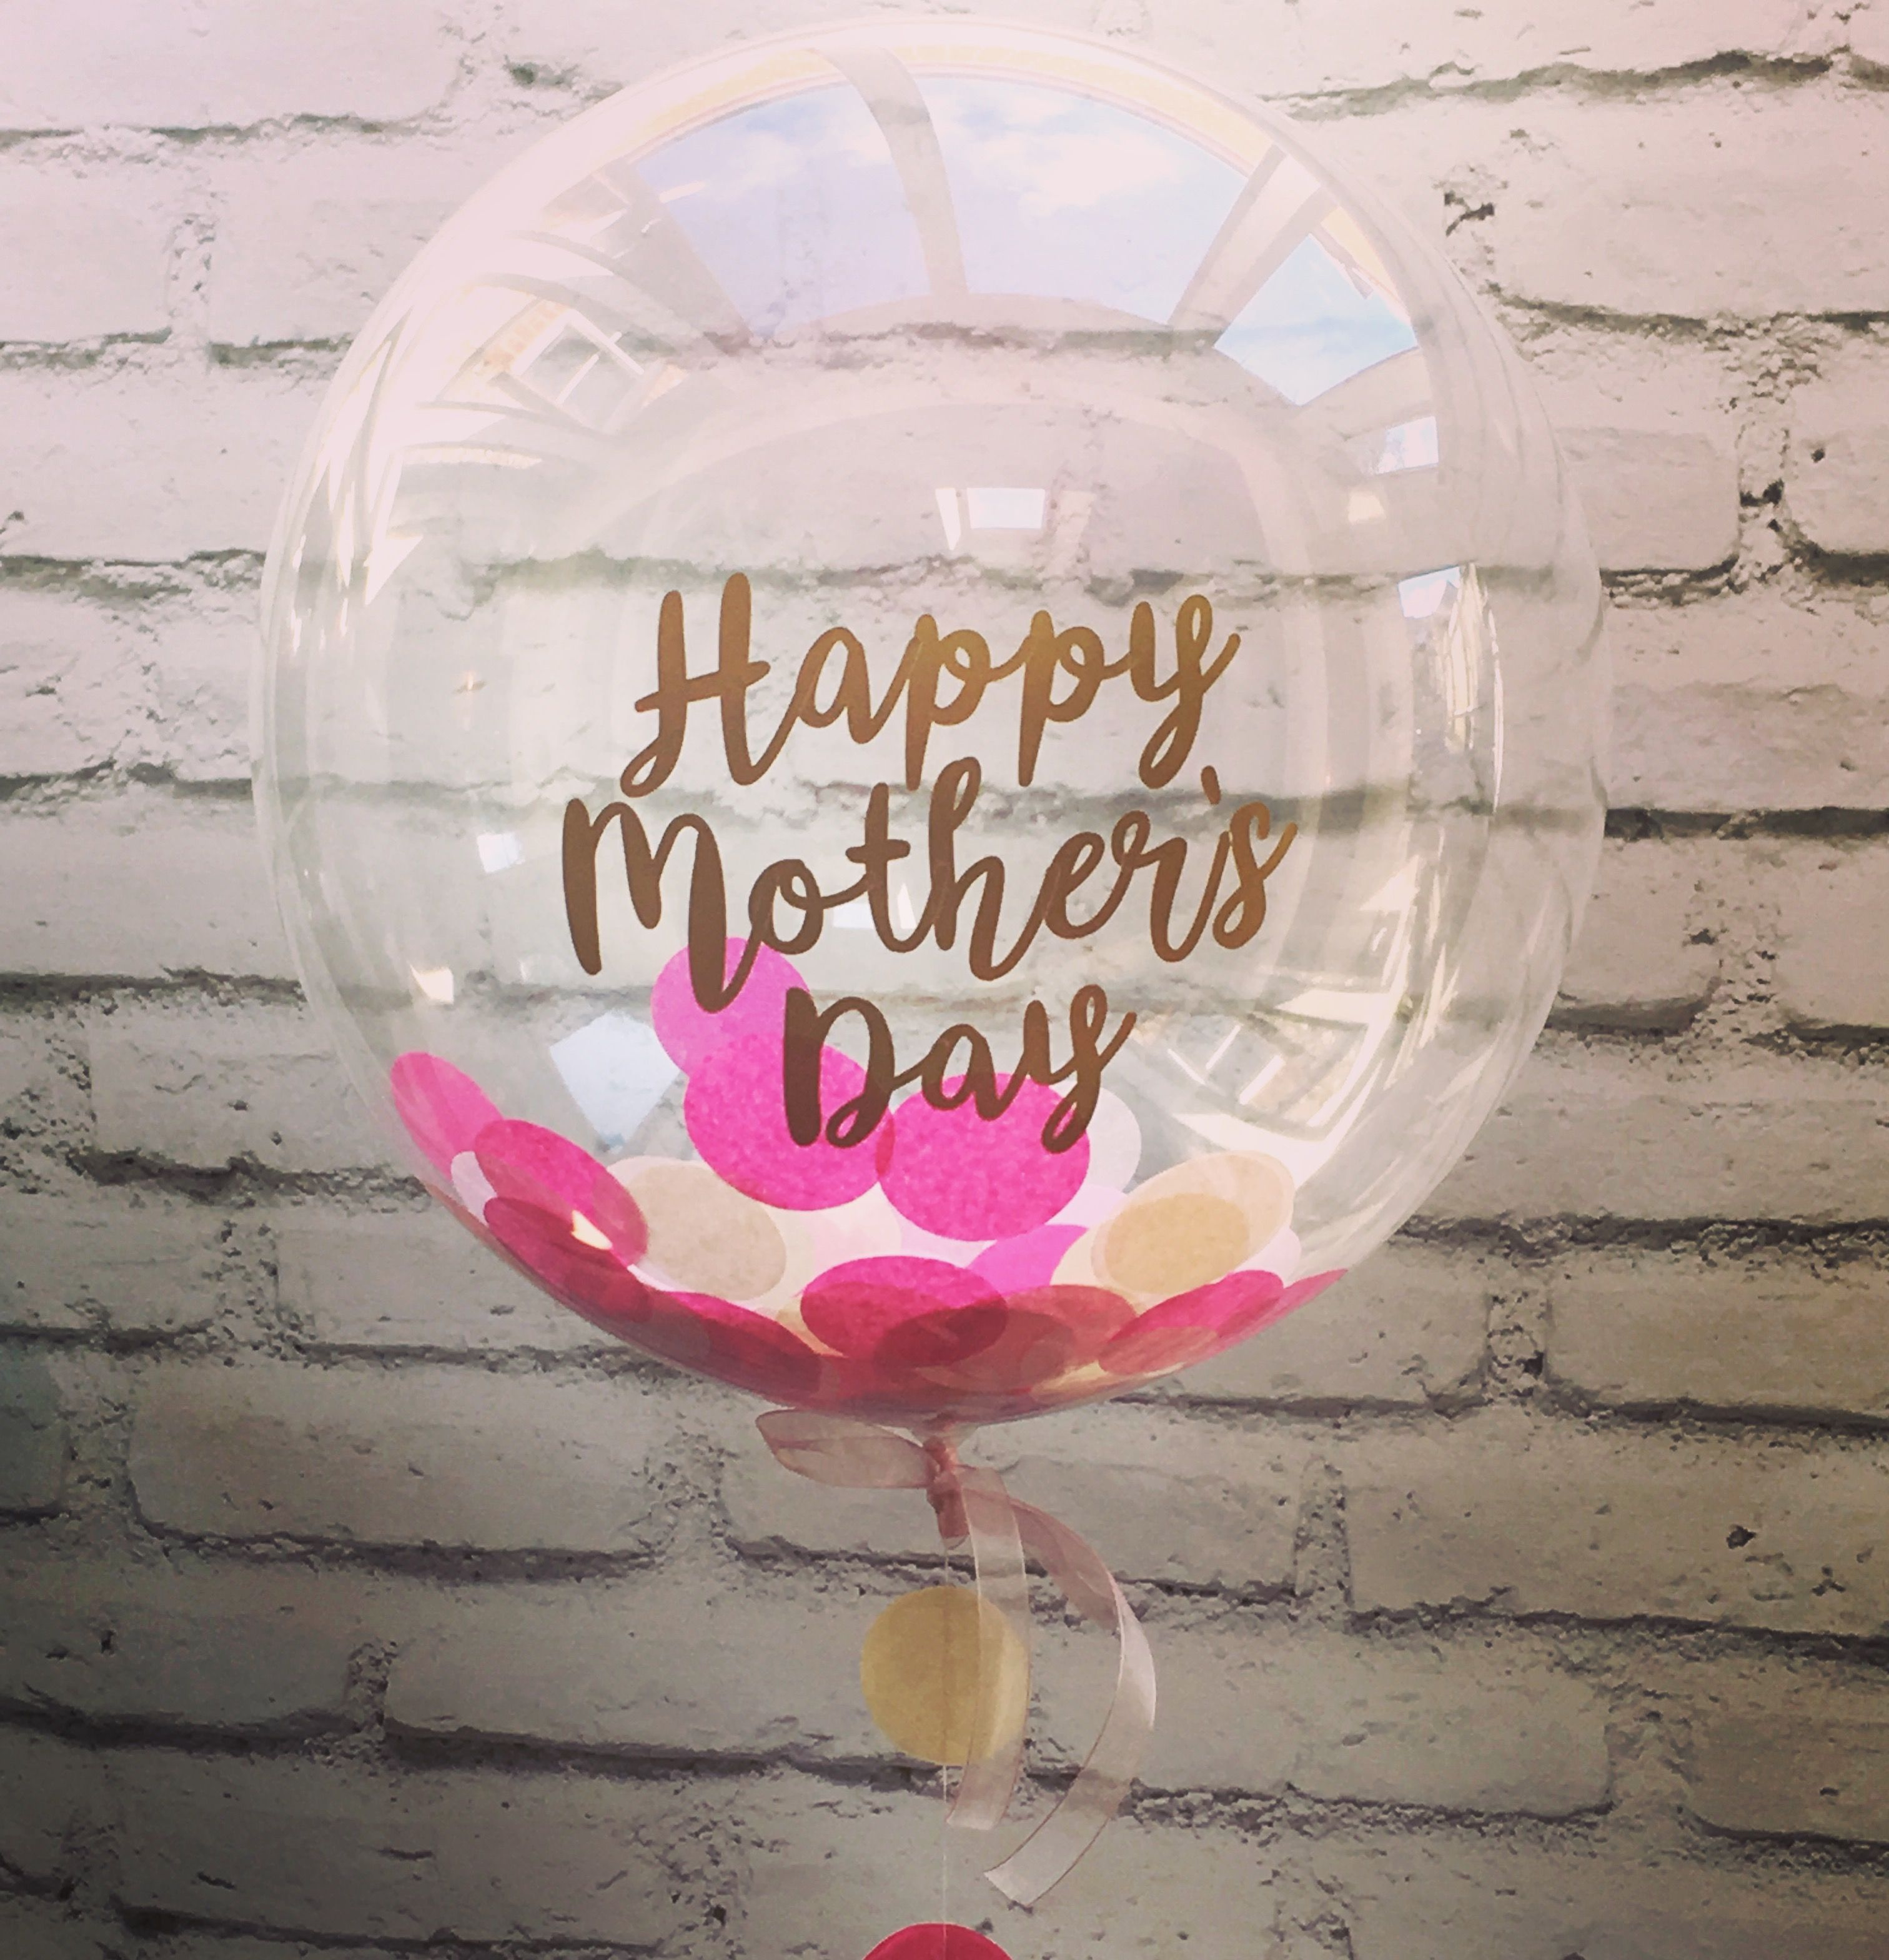 Pink confetti balloon with Happy Mother's Day message from The